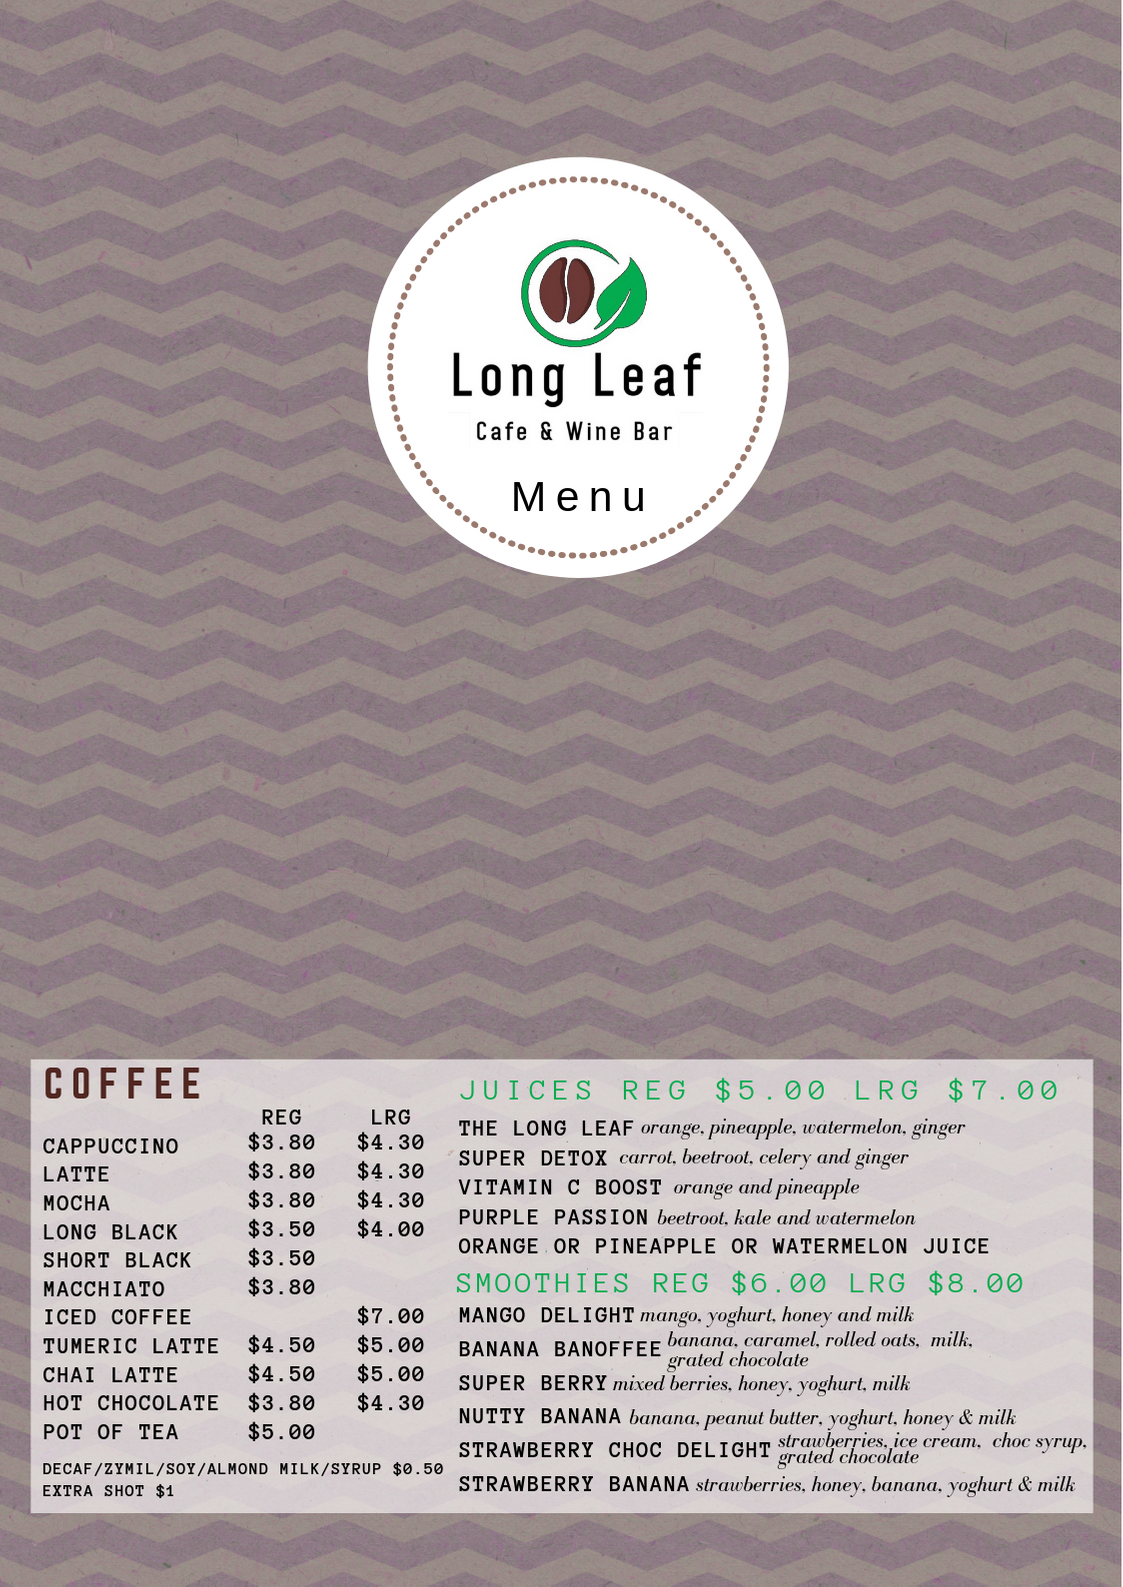 Long Leaf Cafe Menu